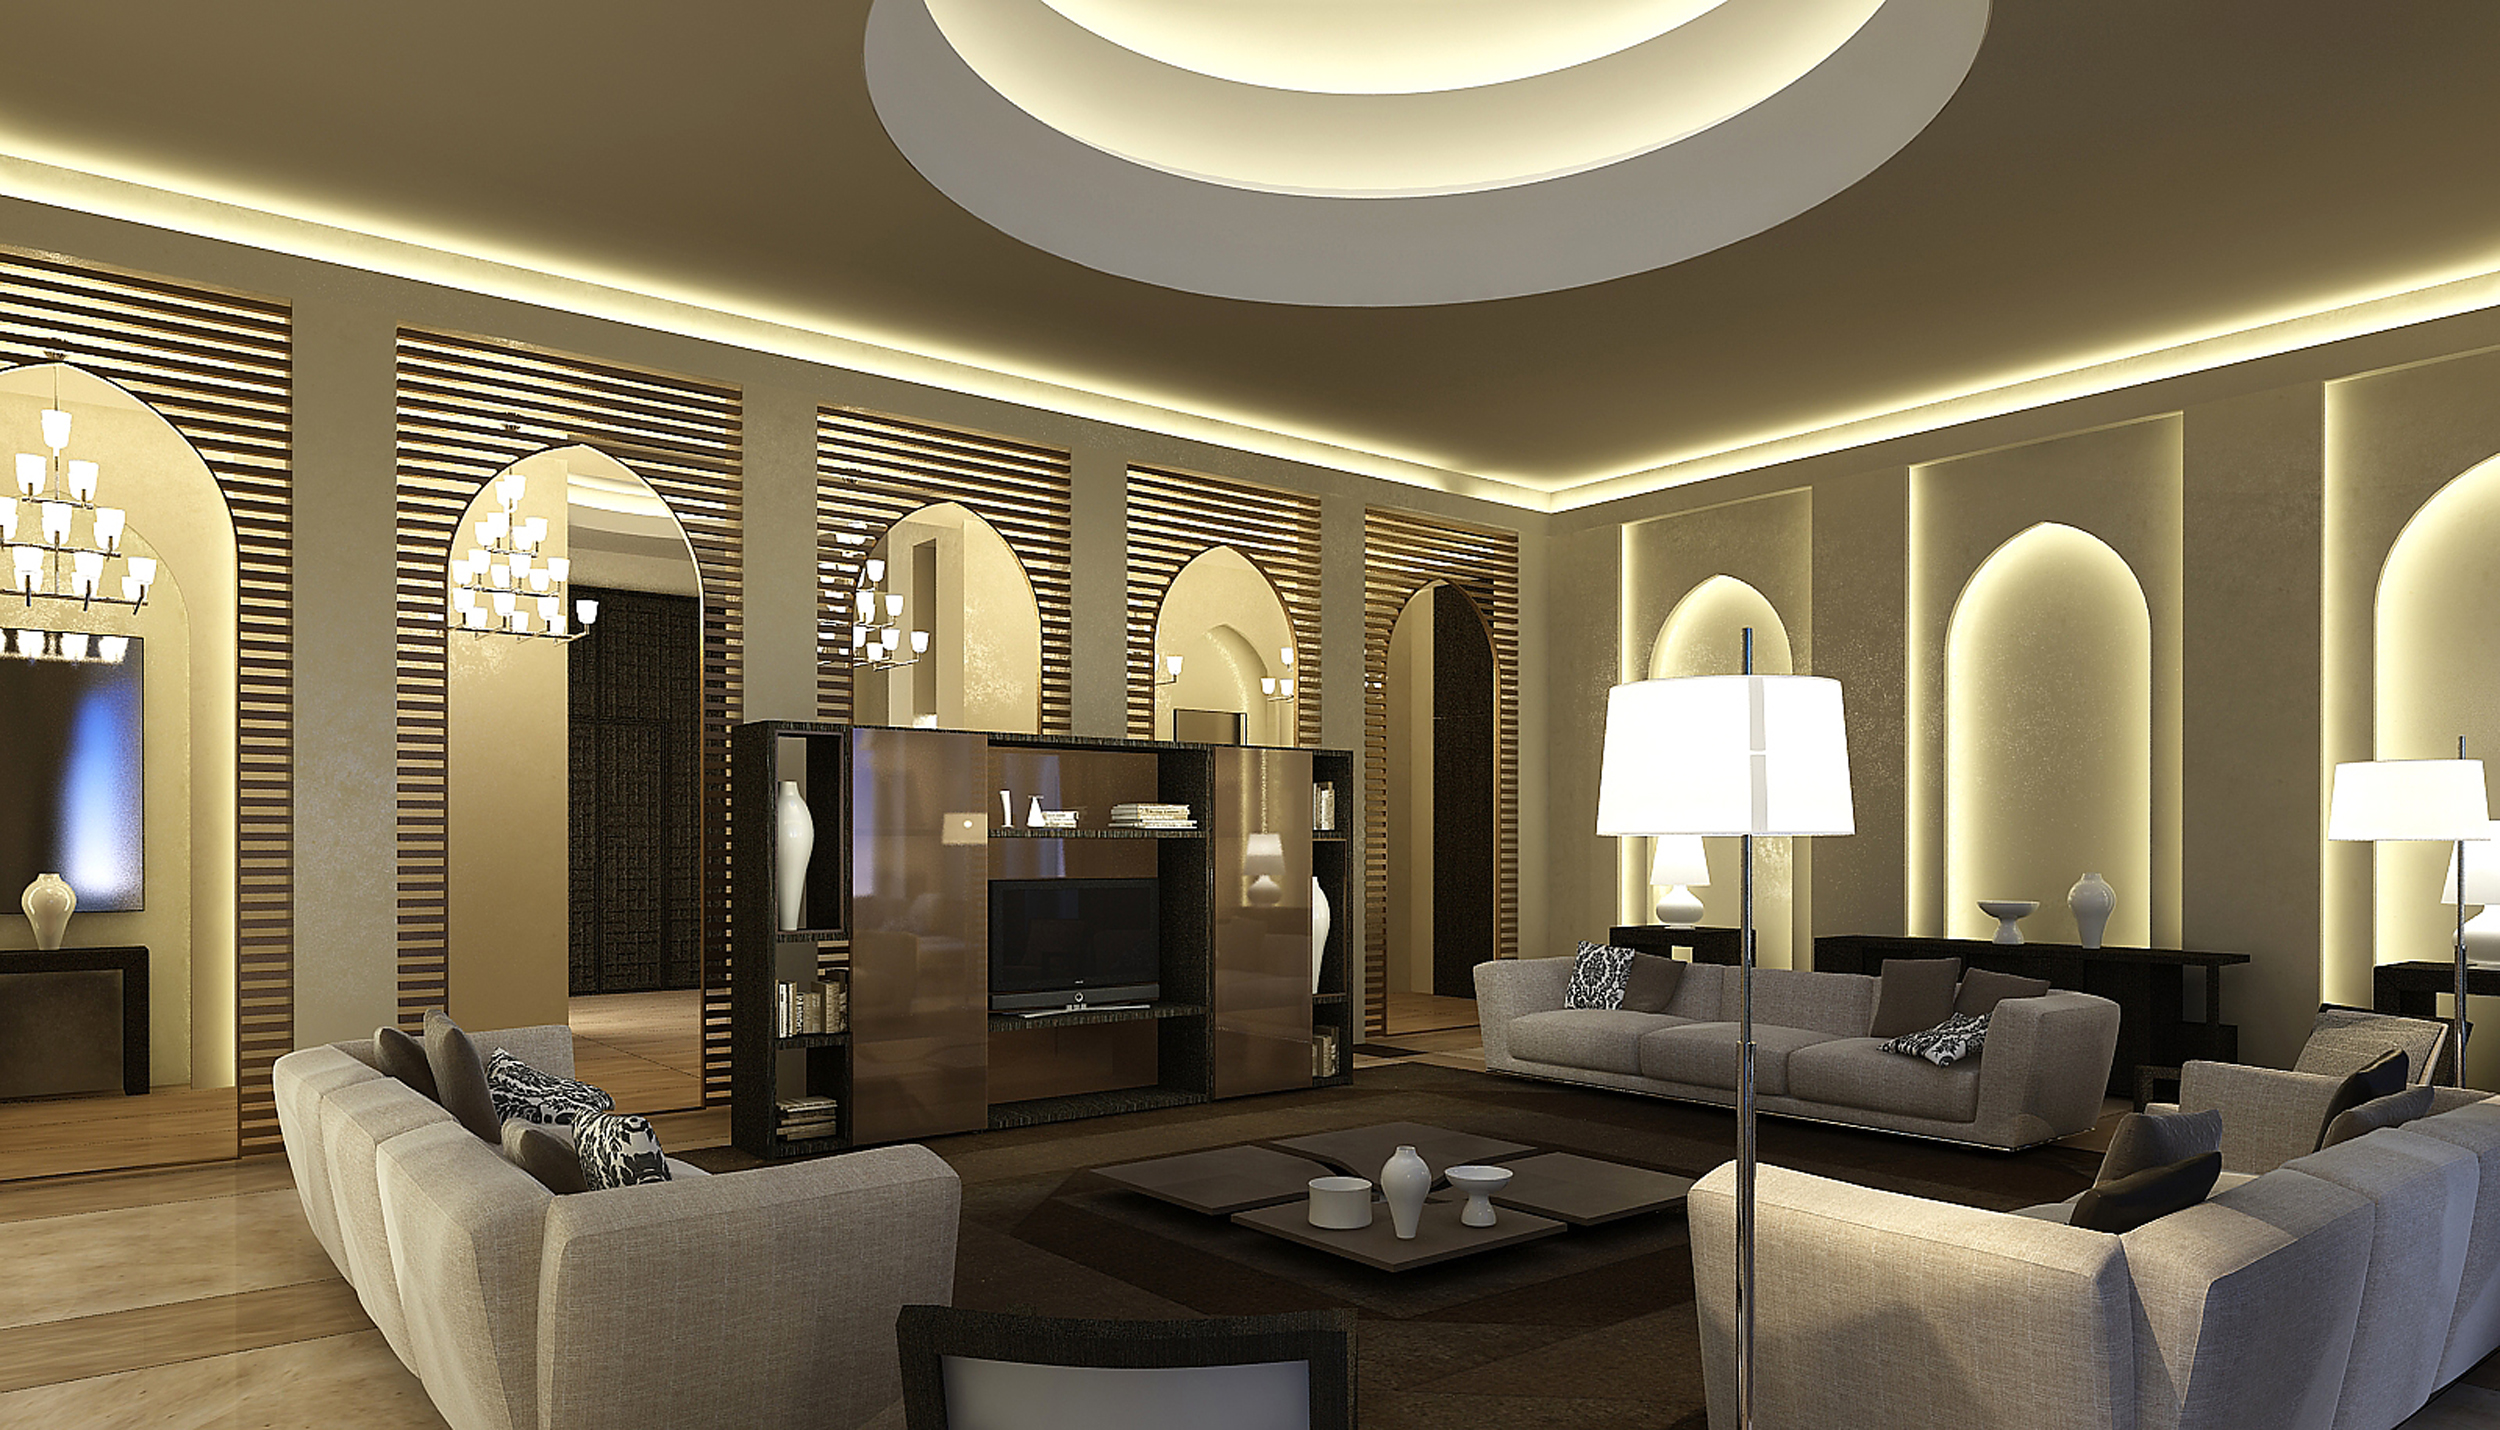 Home Interior Design Company Dubai House Design Plans